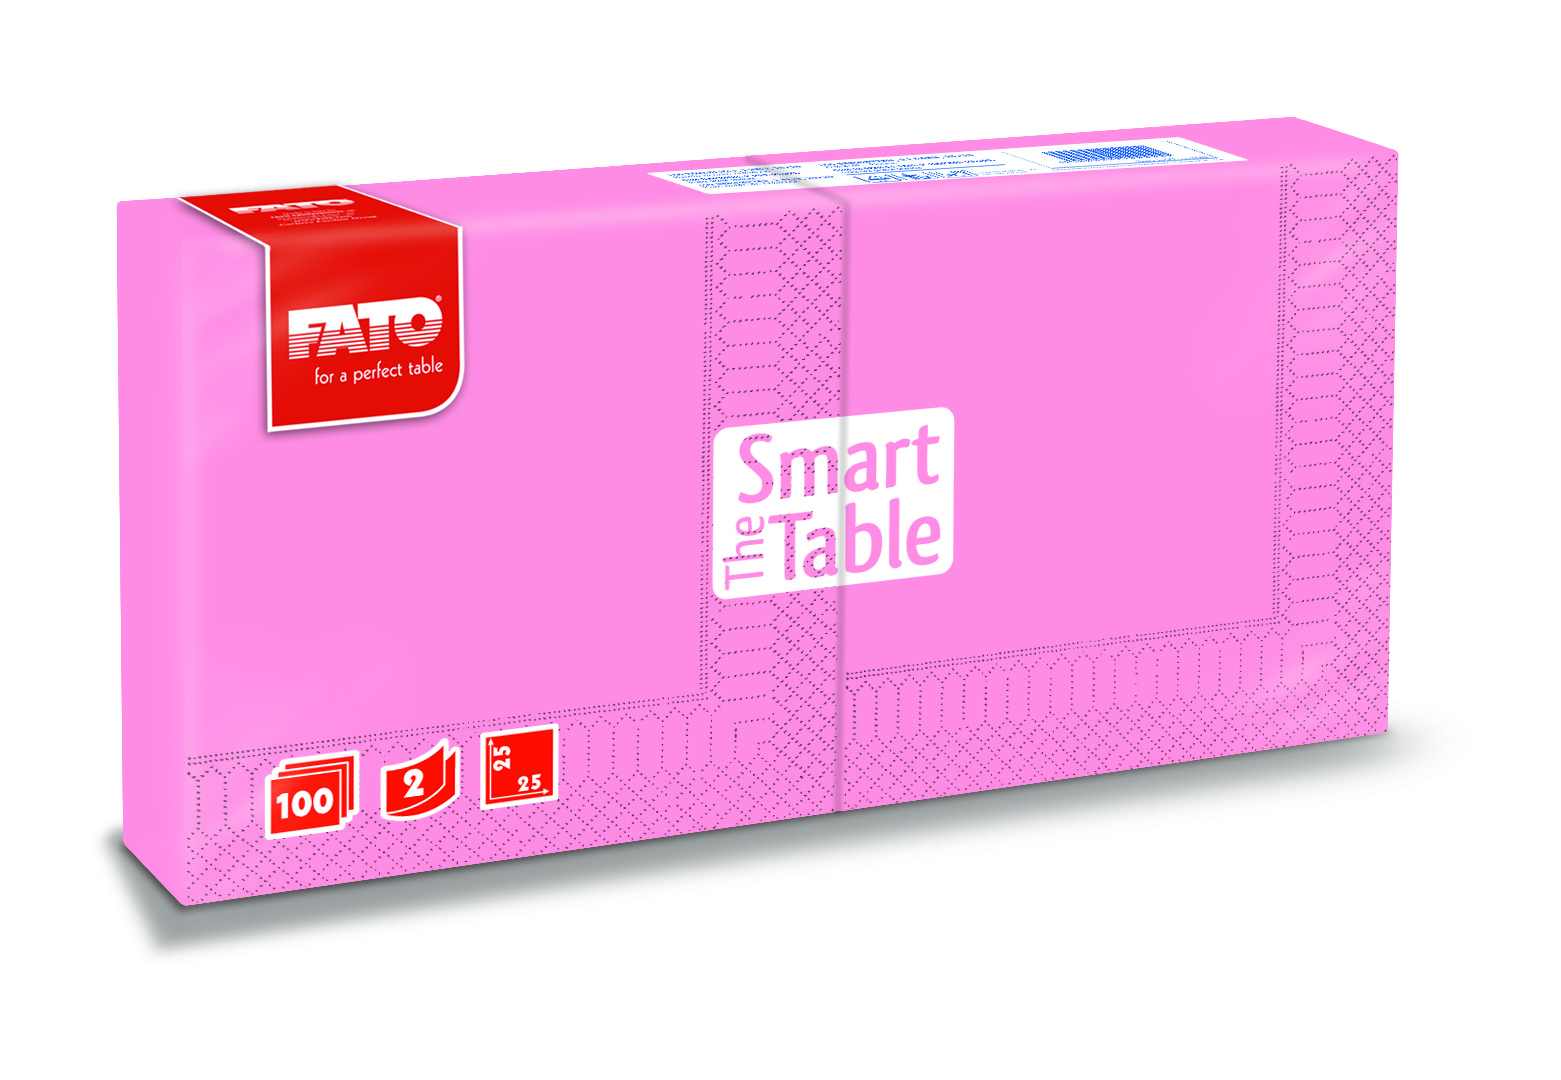 Ubrousky The Smart Table, 25x25cm, 2vr., Růžové - 3800 ks